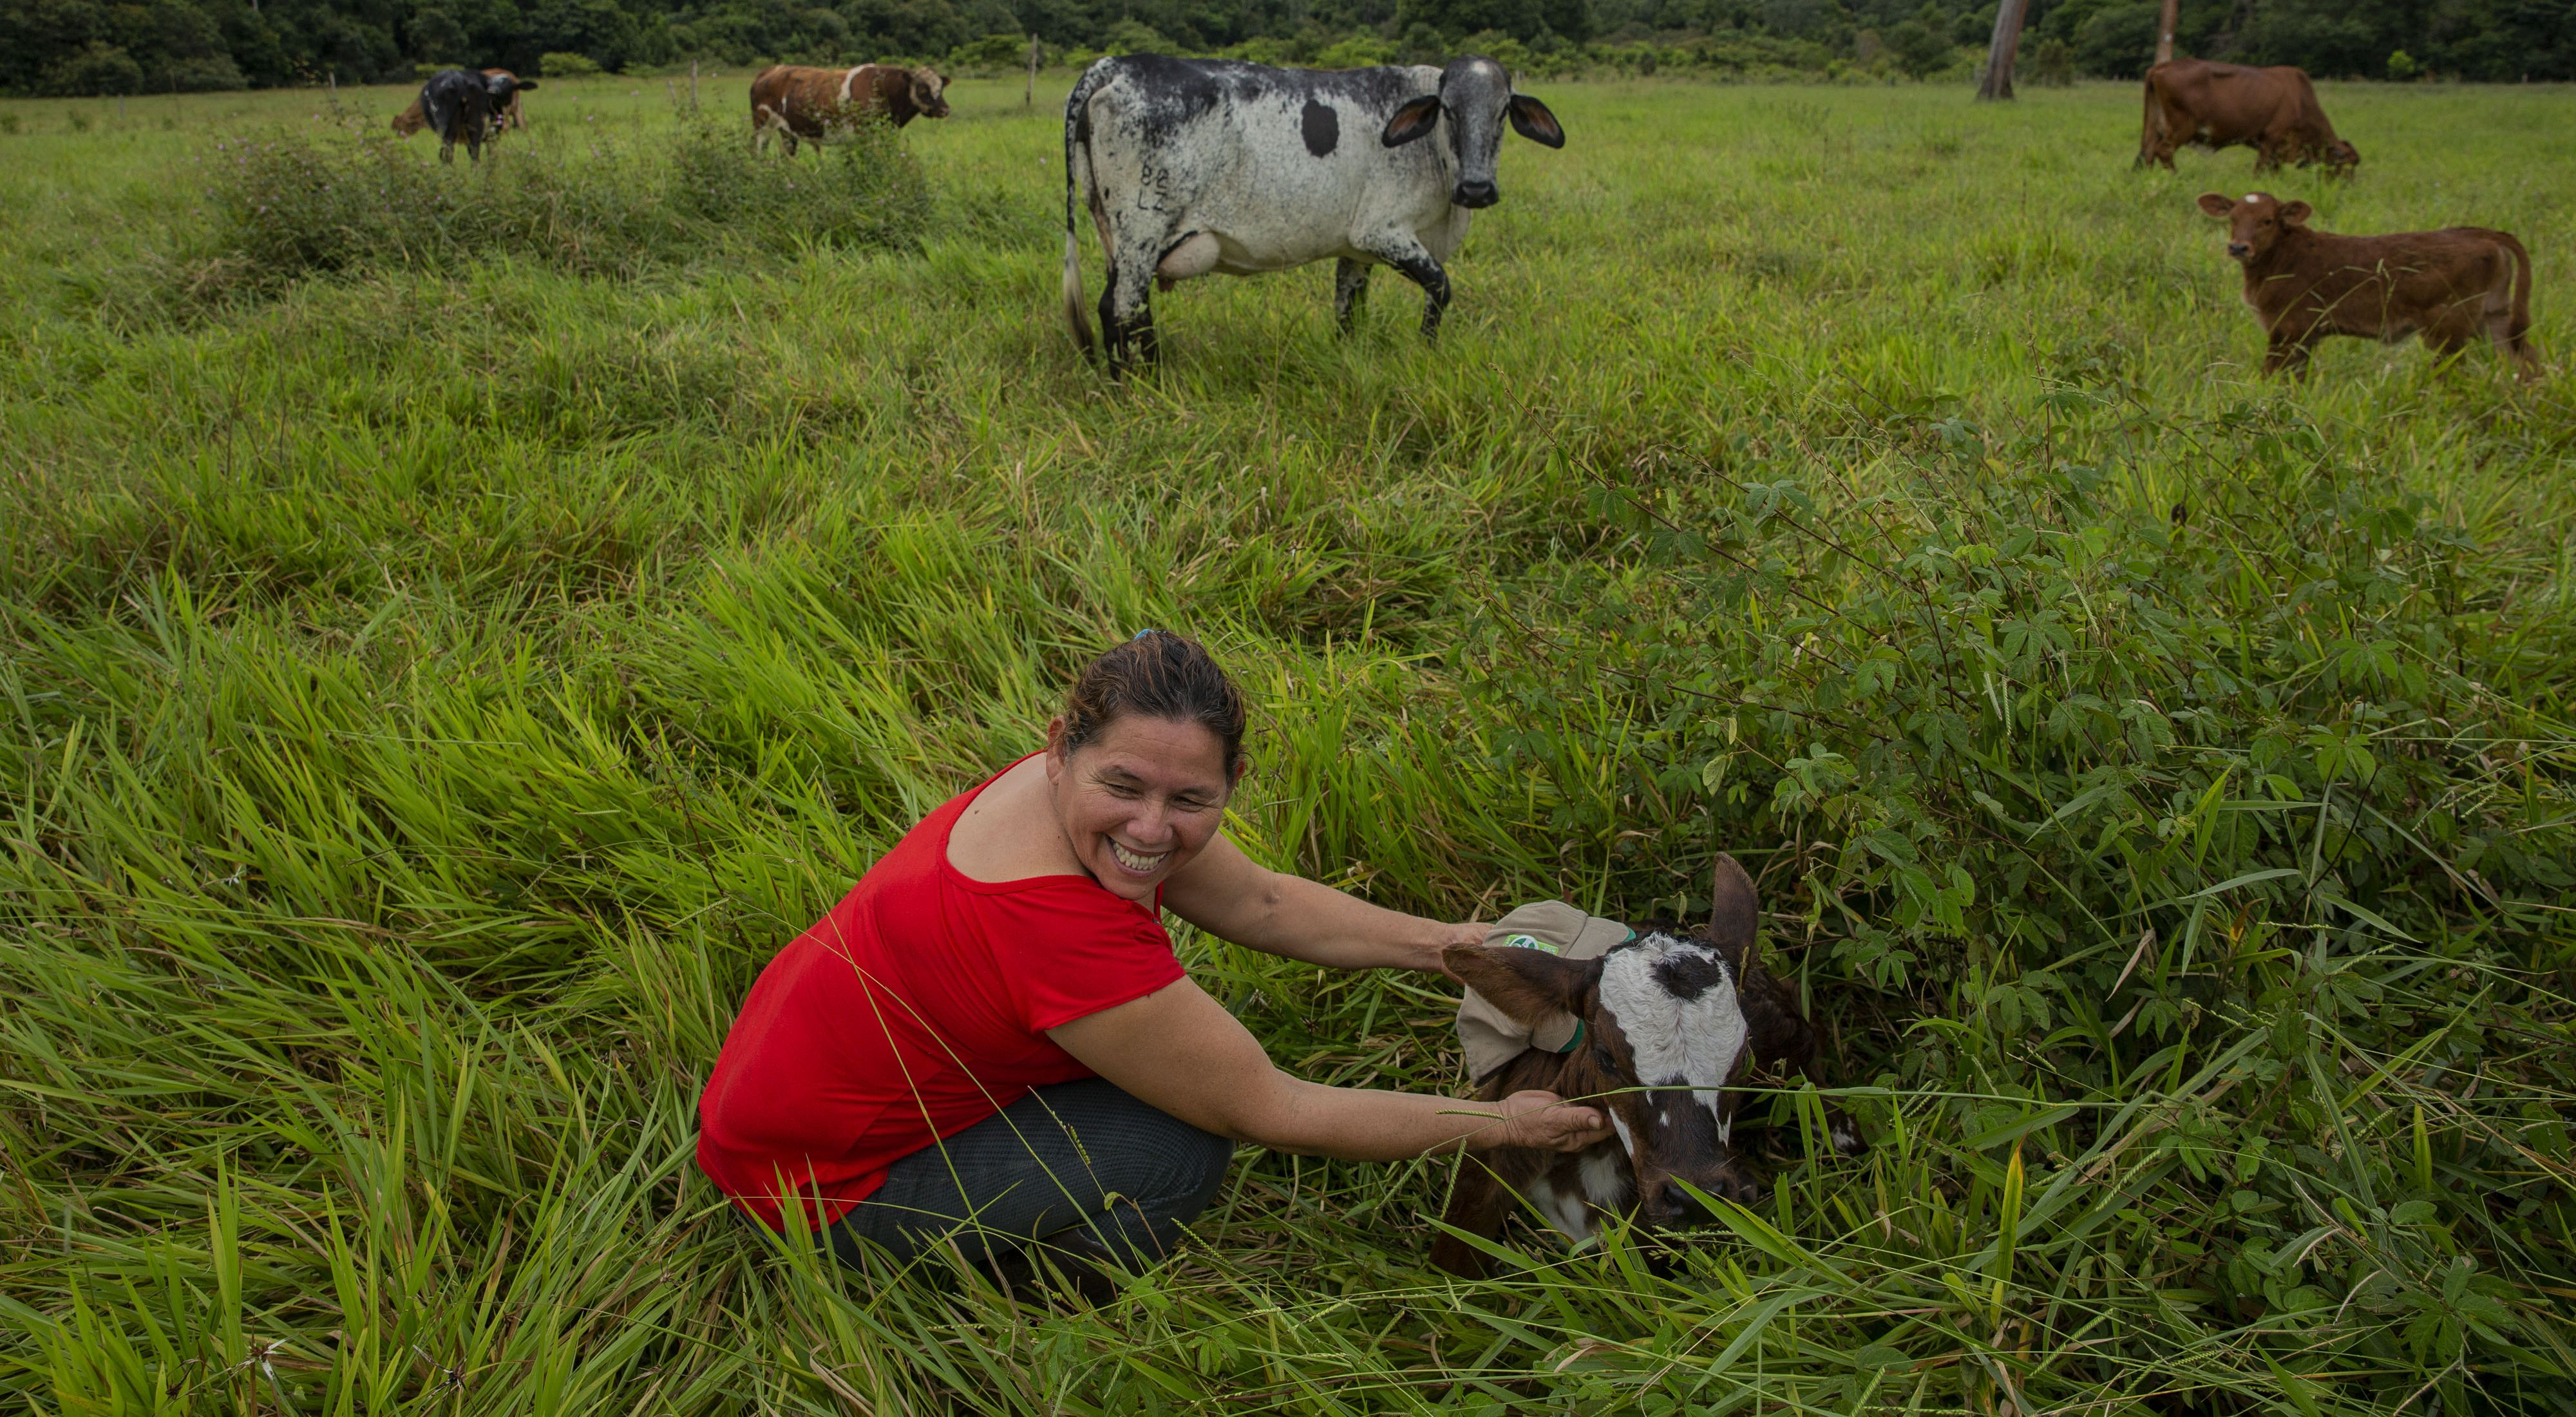 Mercedes Murillo (62) attends to her cows on her farm. 16 acres of her land are designated for